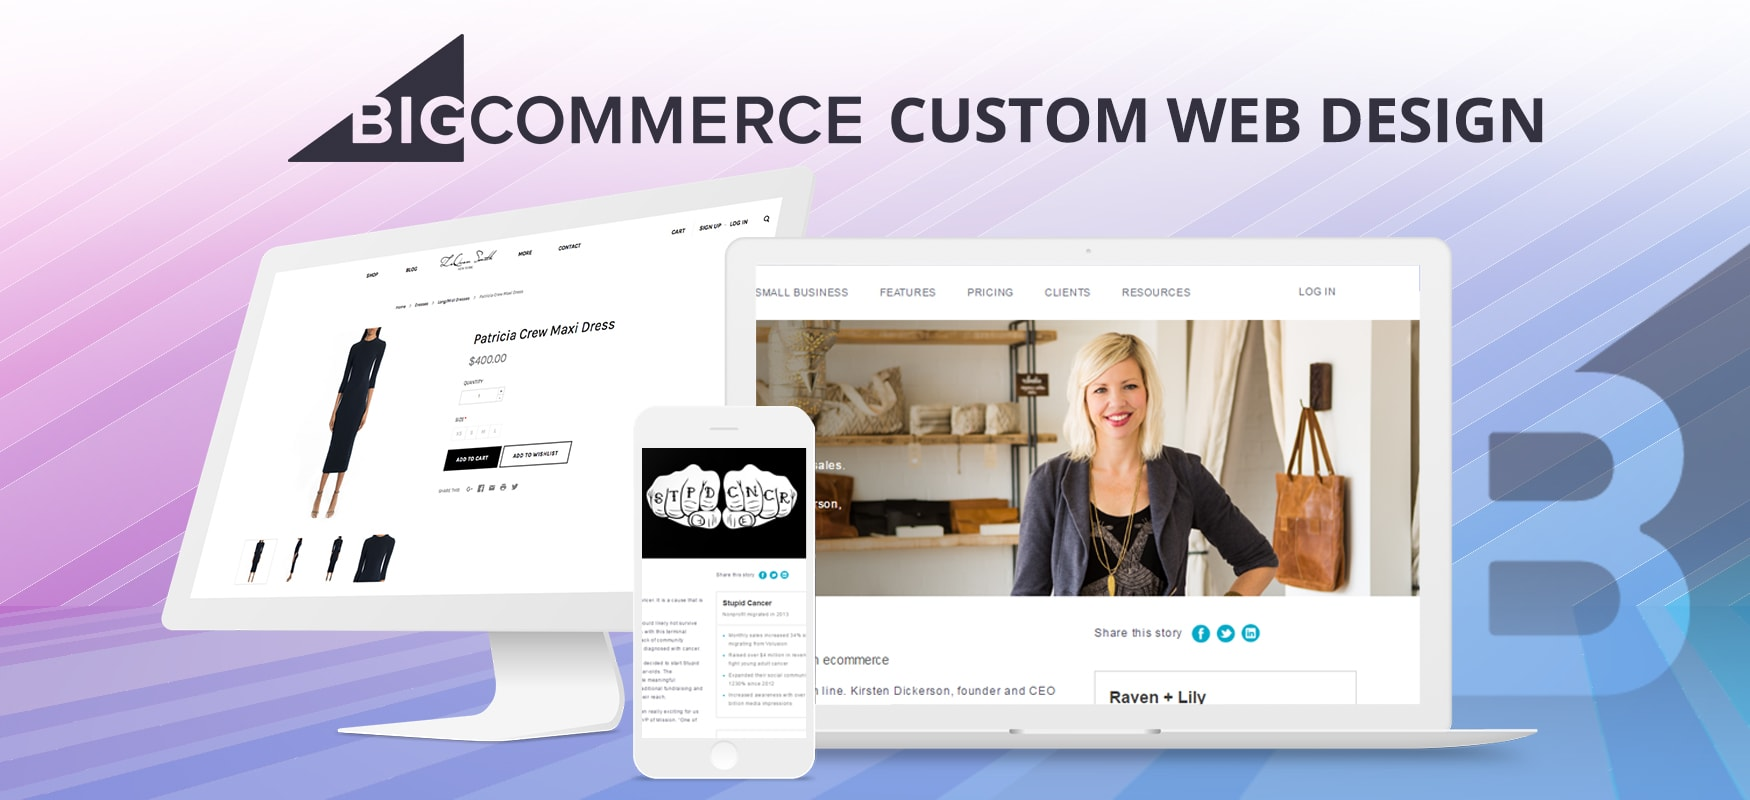 Bigcommerce Page Banner Image